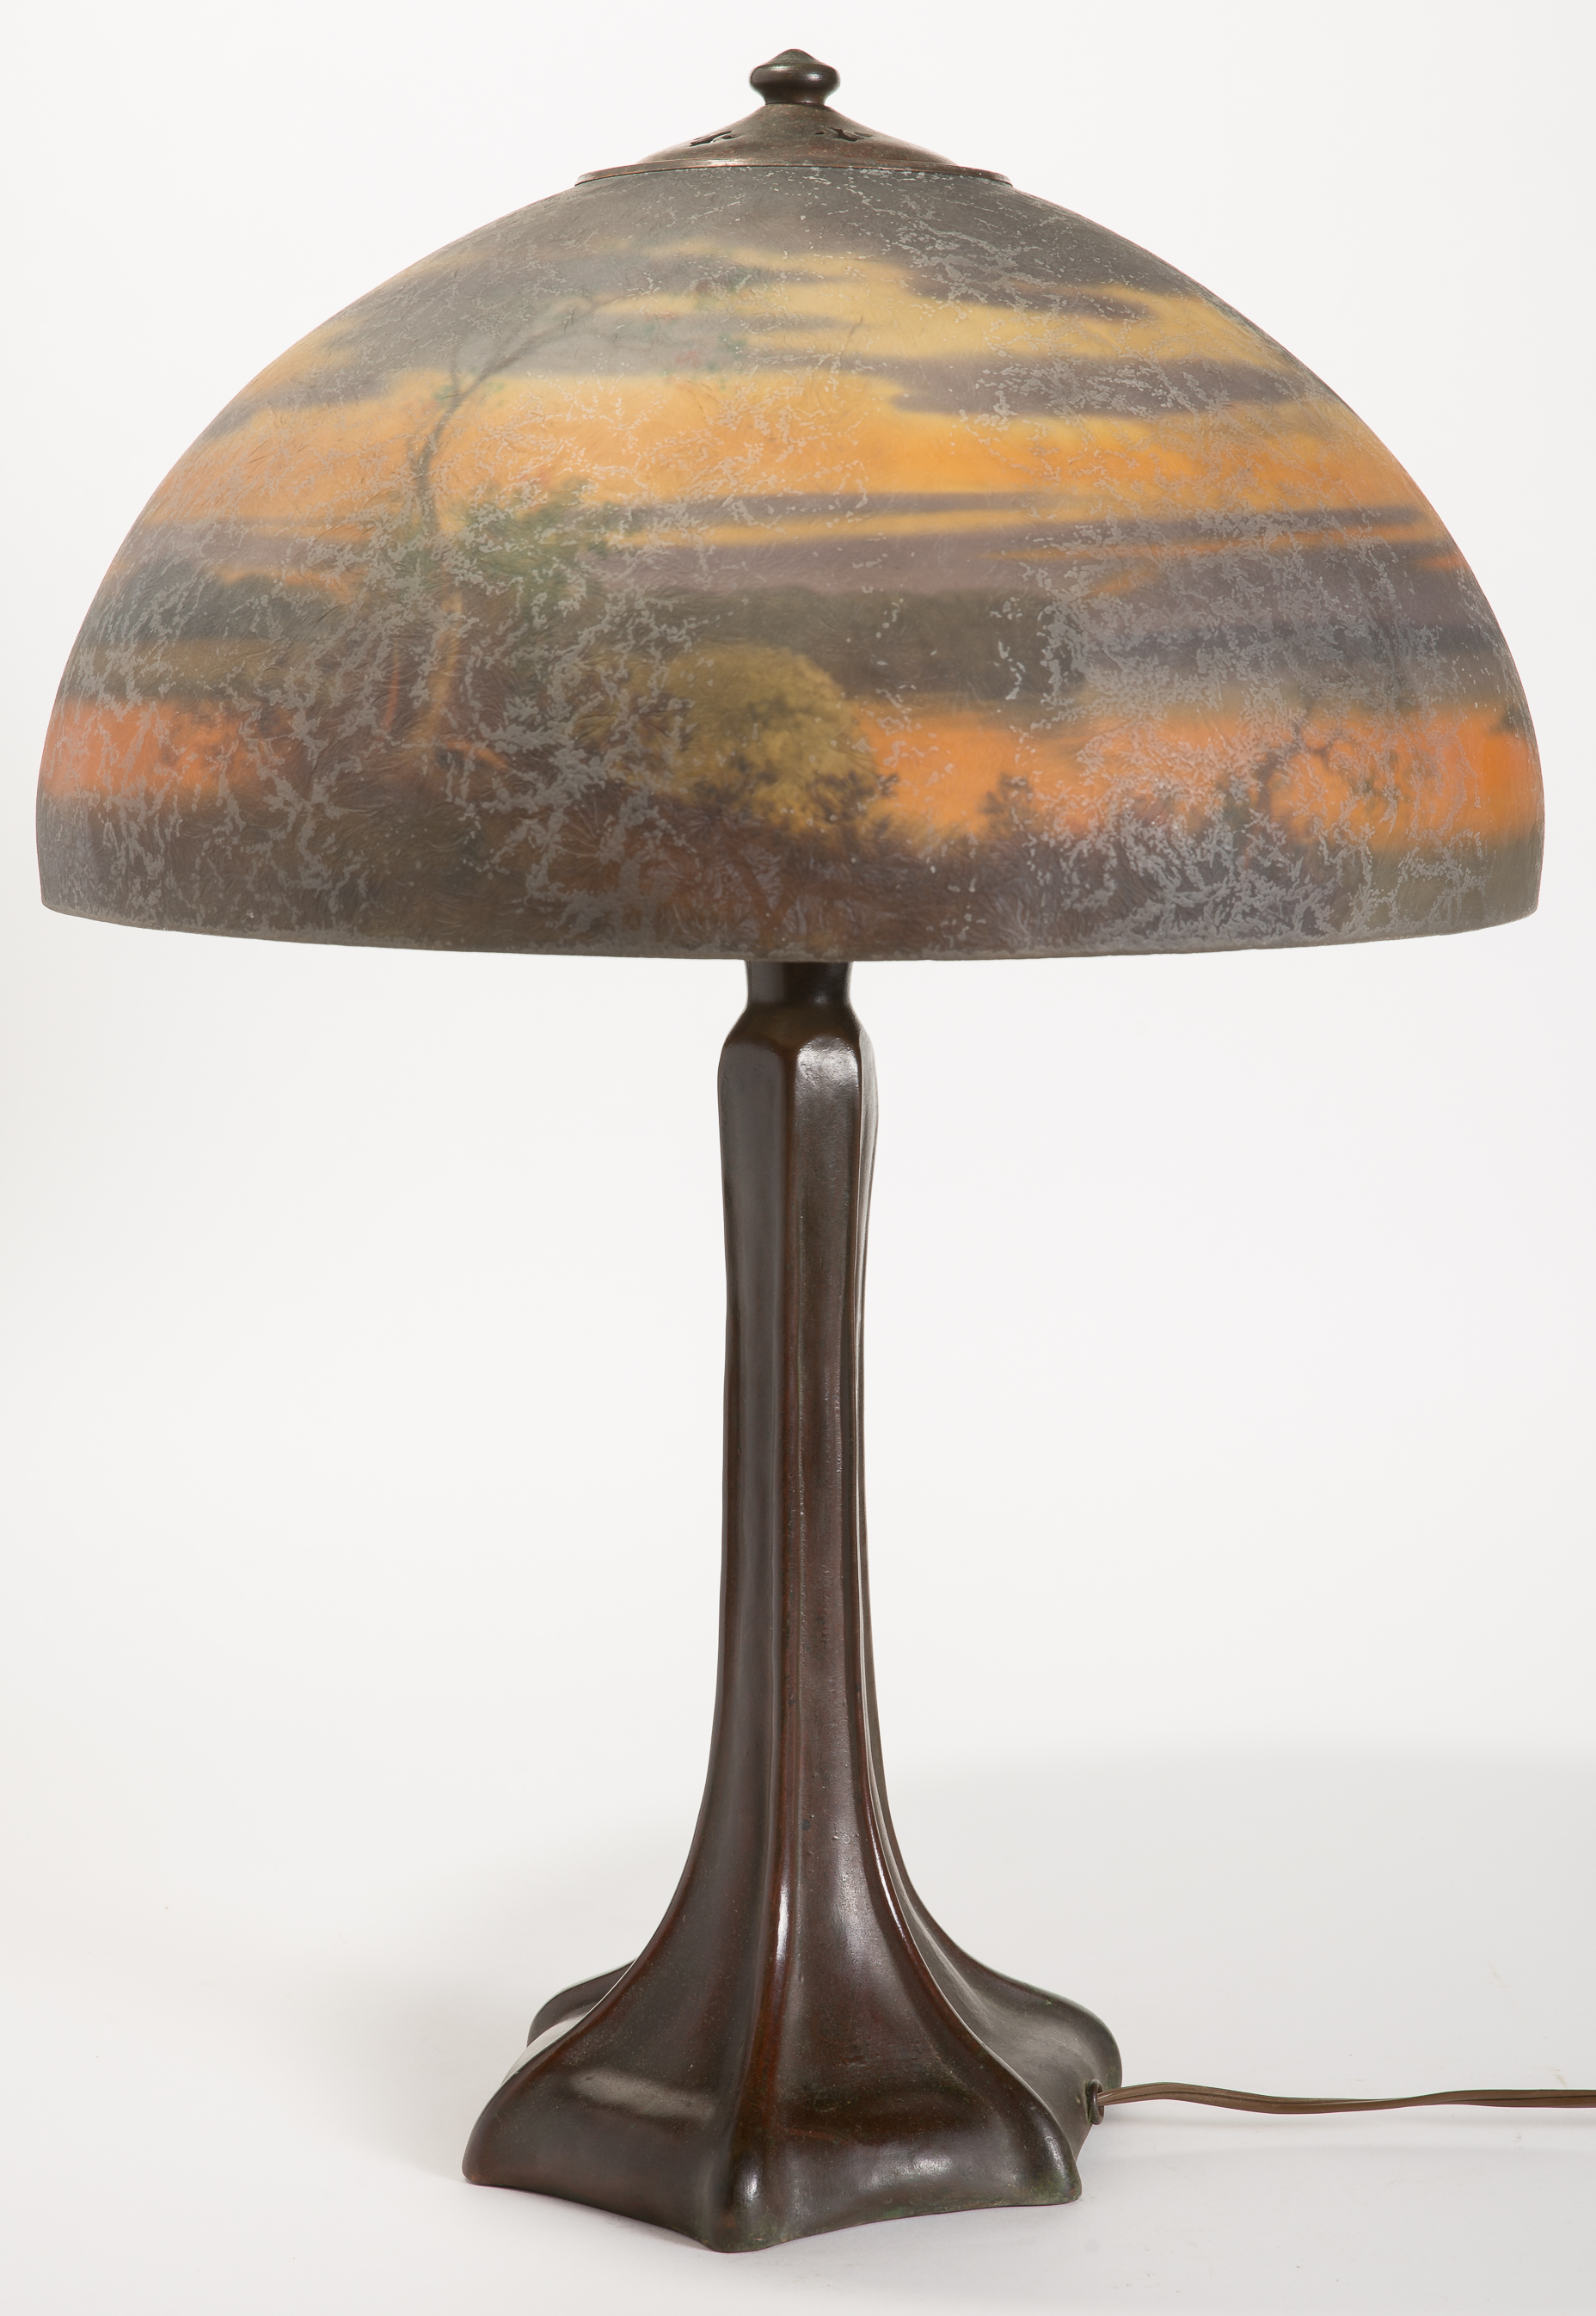 Lot 4 Handel Landscape Table Lamp 6961 Manifest Auctions